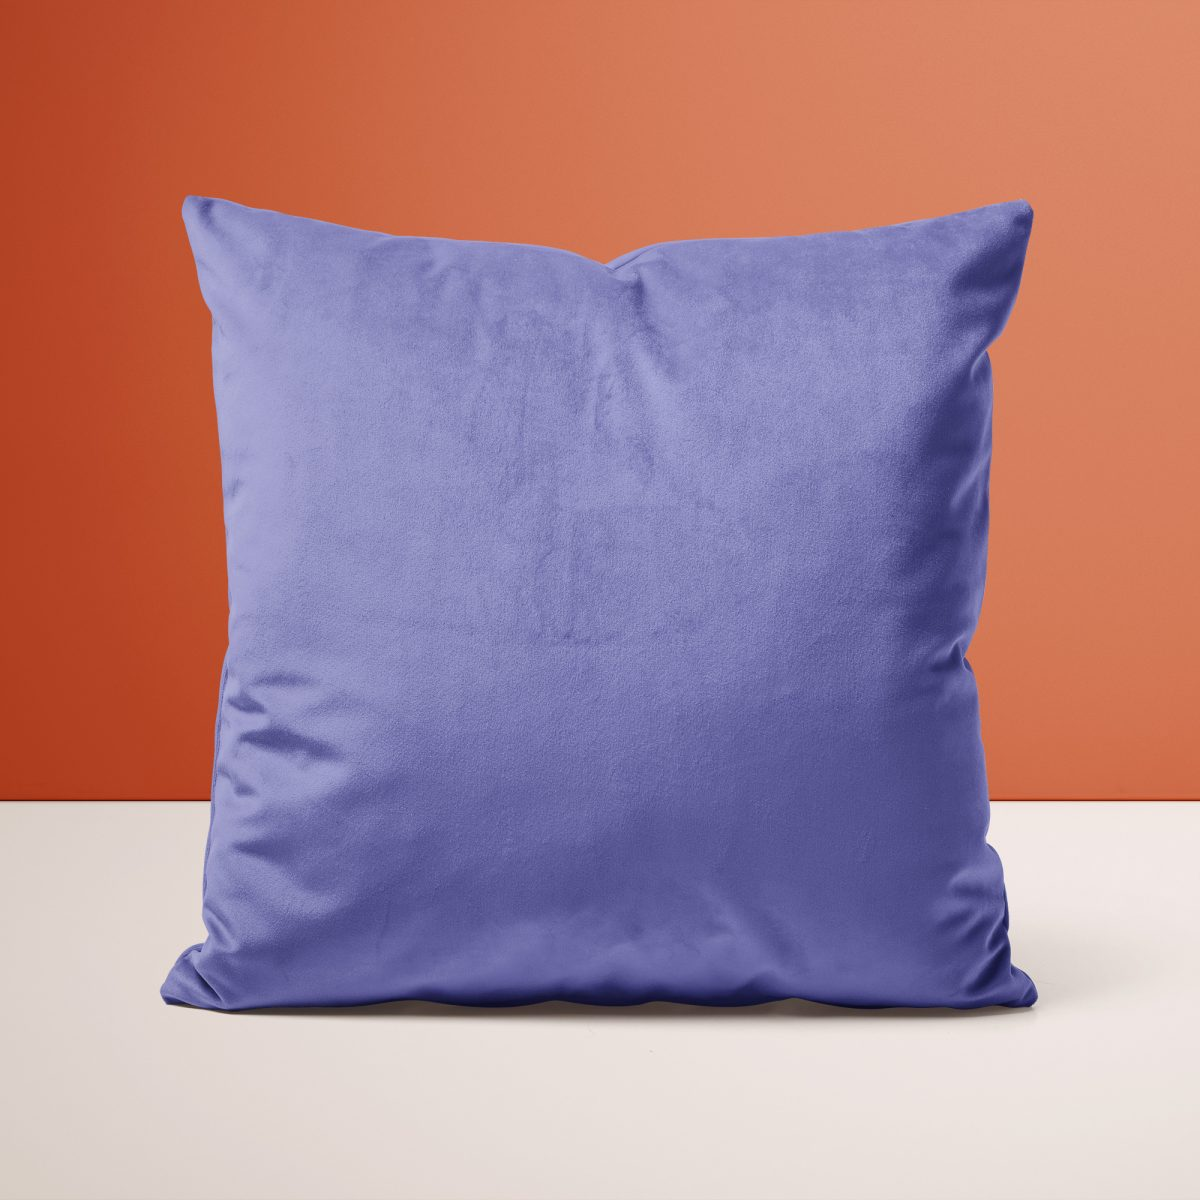 lavender-covers-of-the-rainbow-1